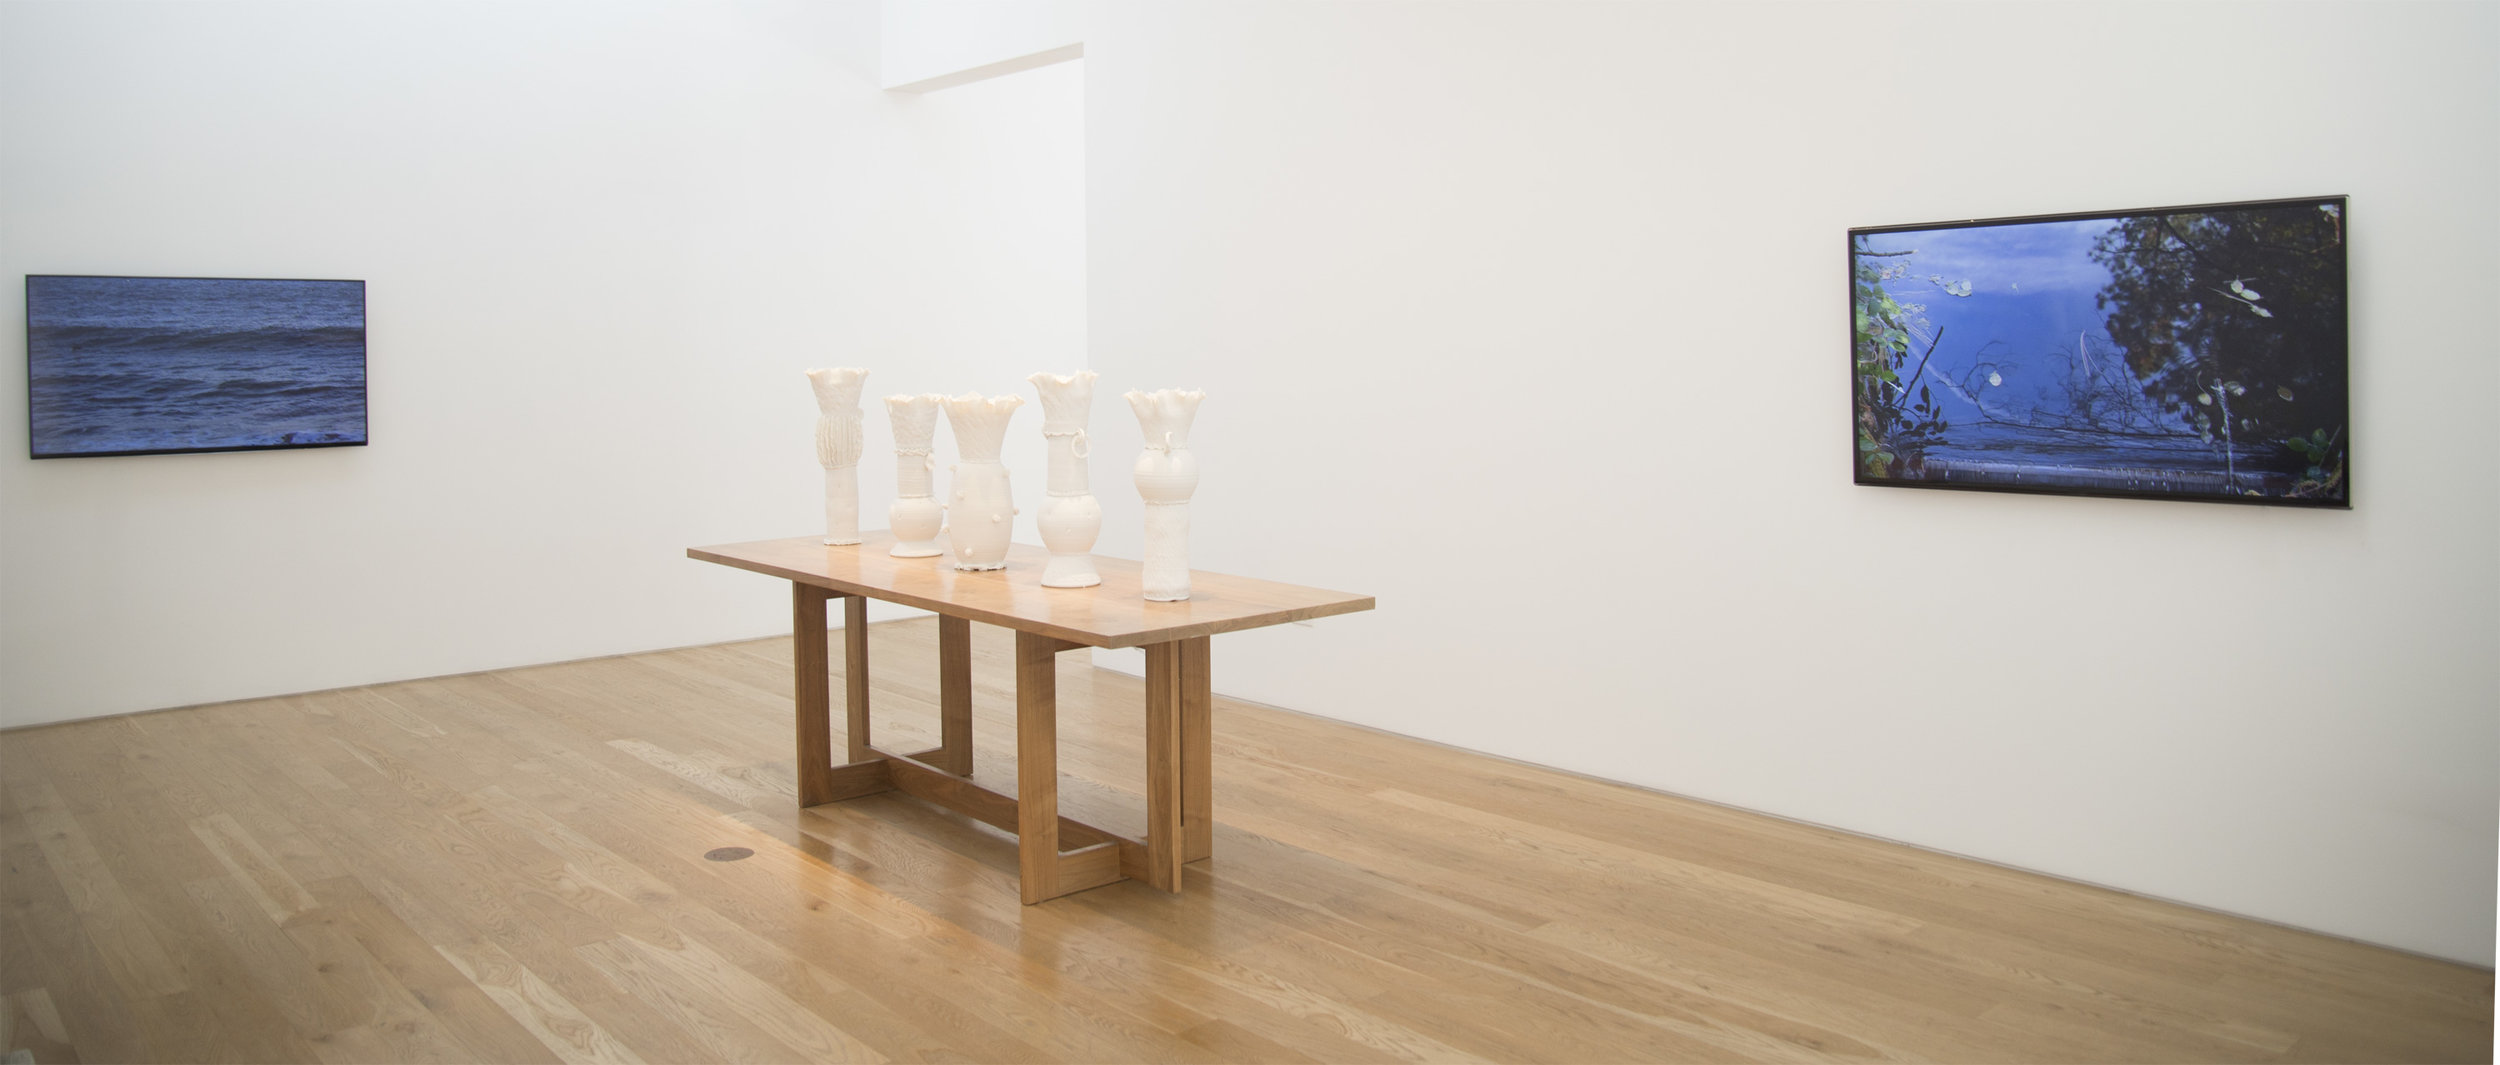 Mineo Mizuno  Current  Installation View, 2015